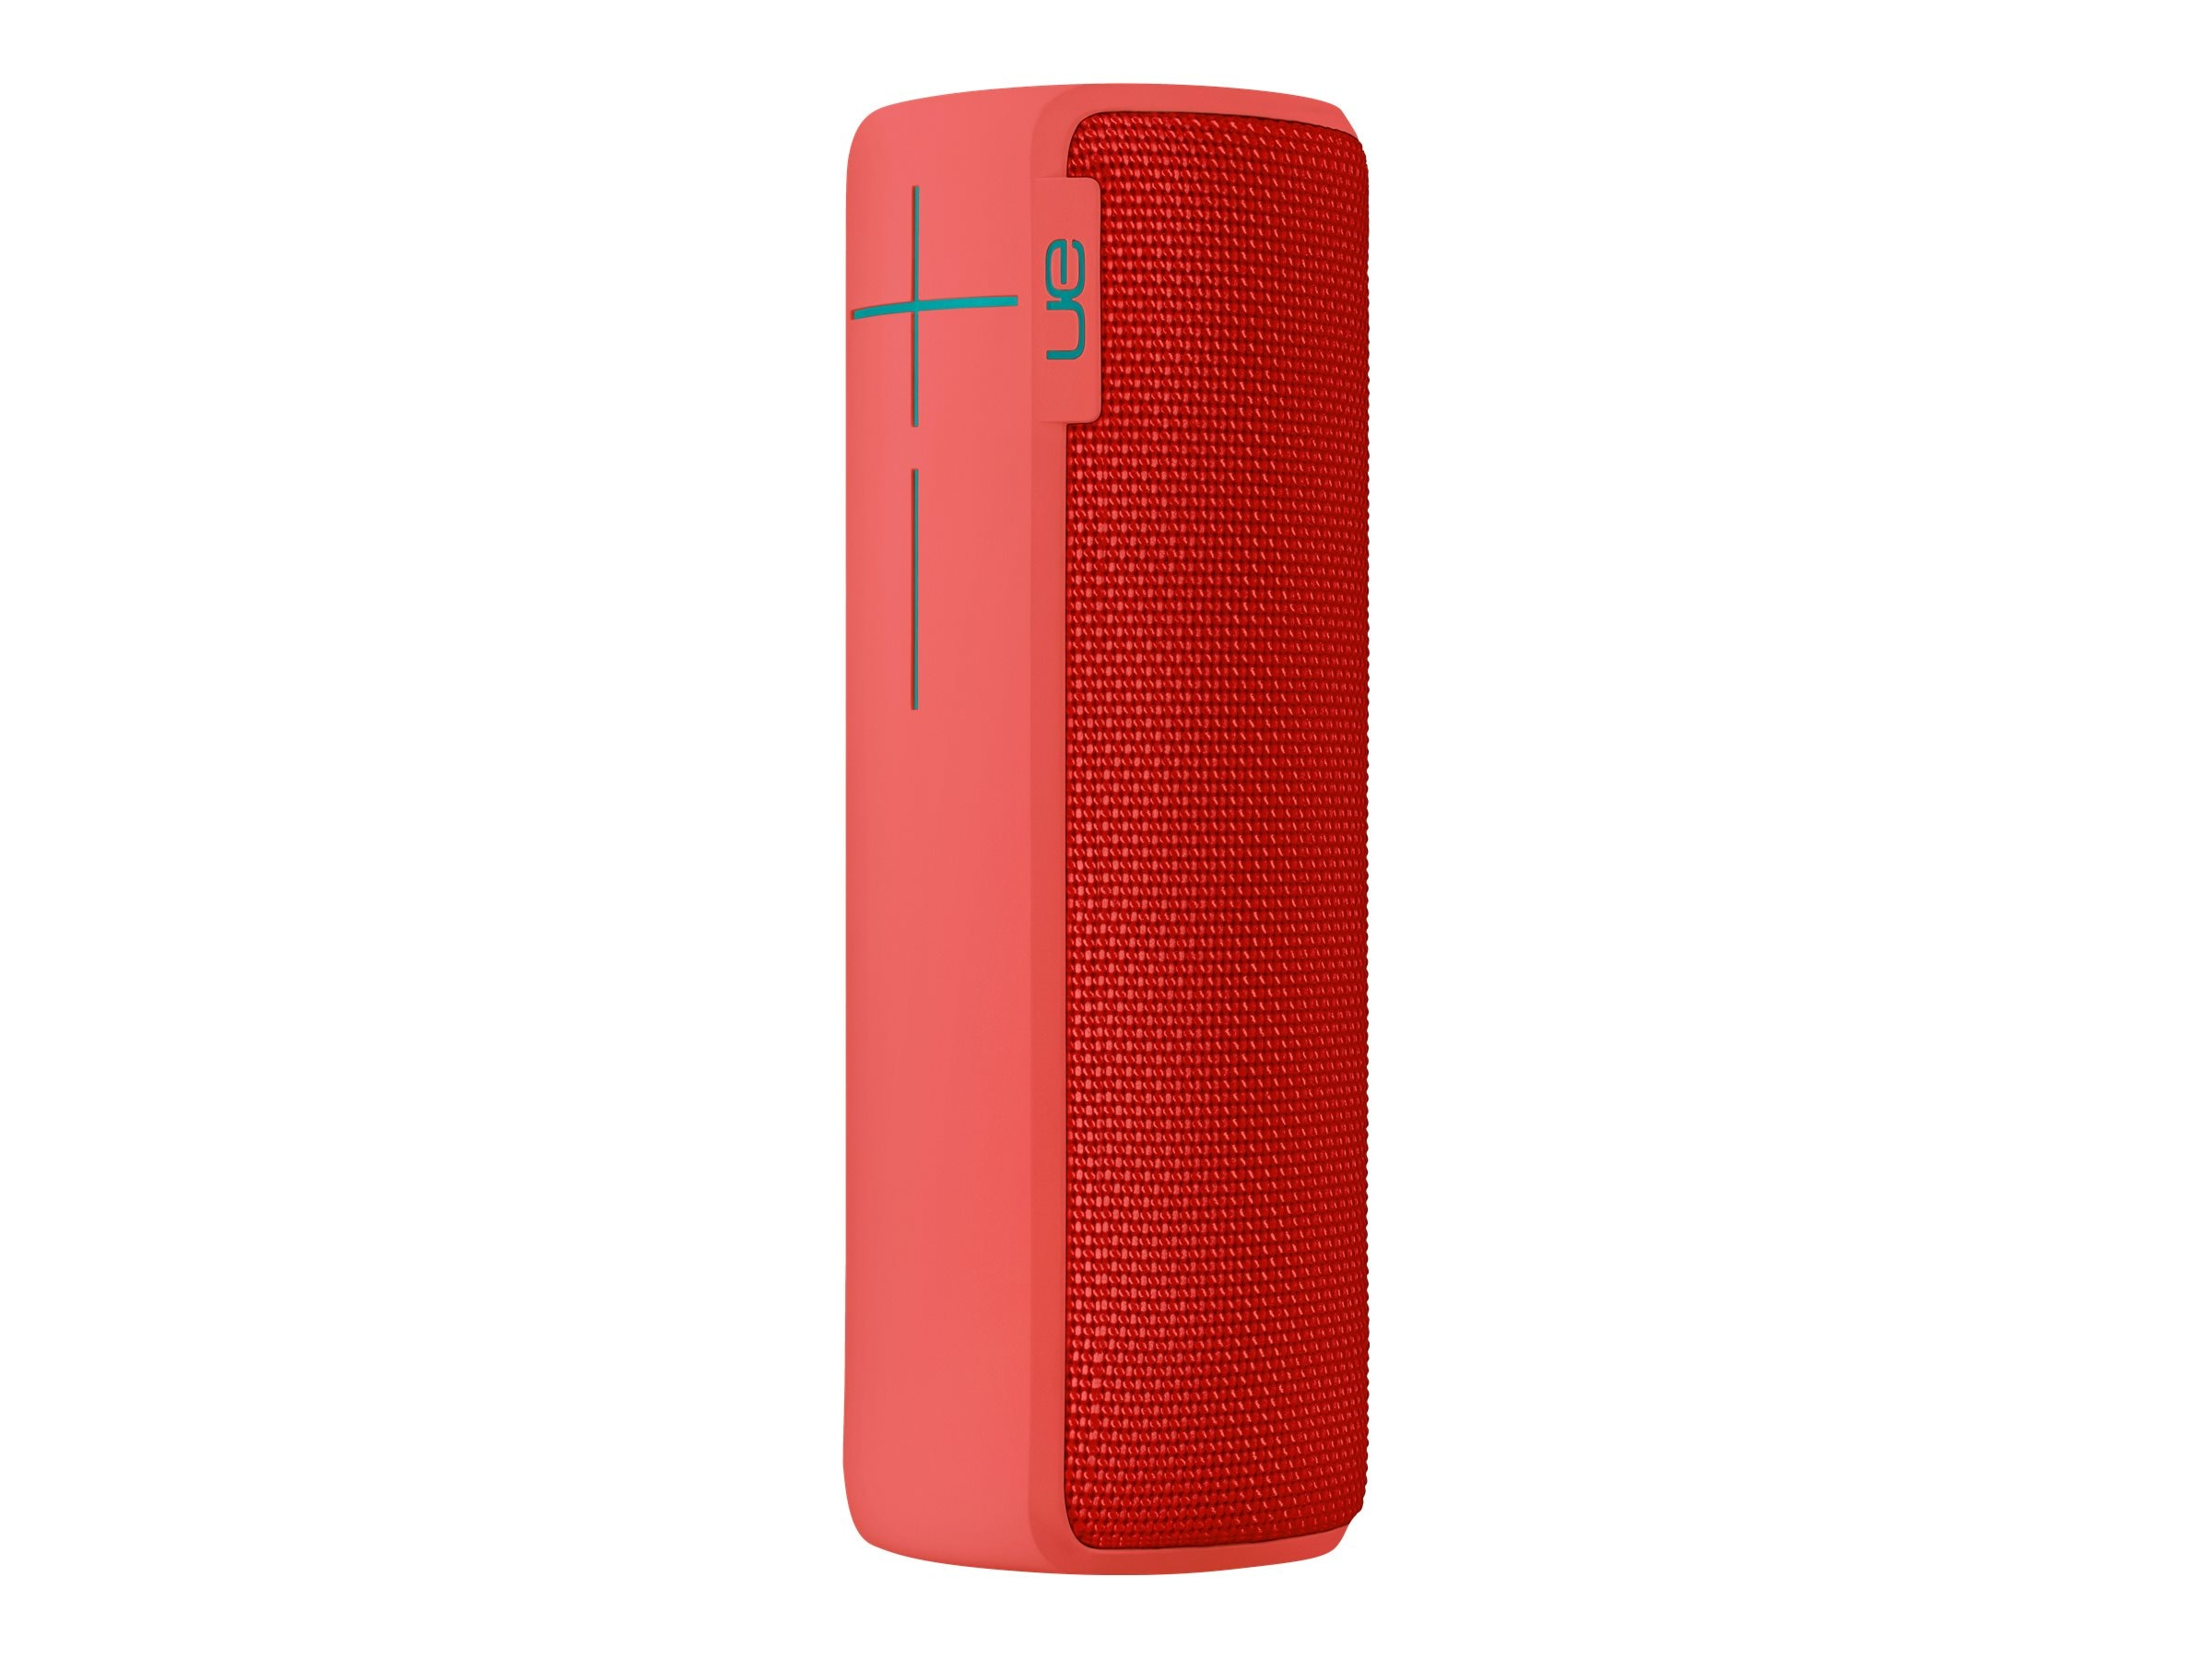 Logitech UE Boom 2 Wireless Speaker, CherryBomb, 984-000554, 30971027, Speakers - Audio